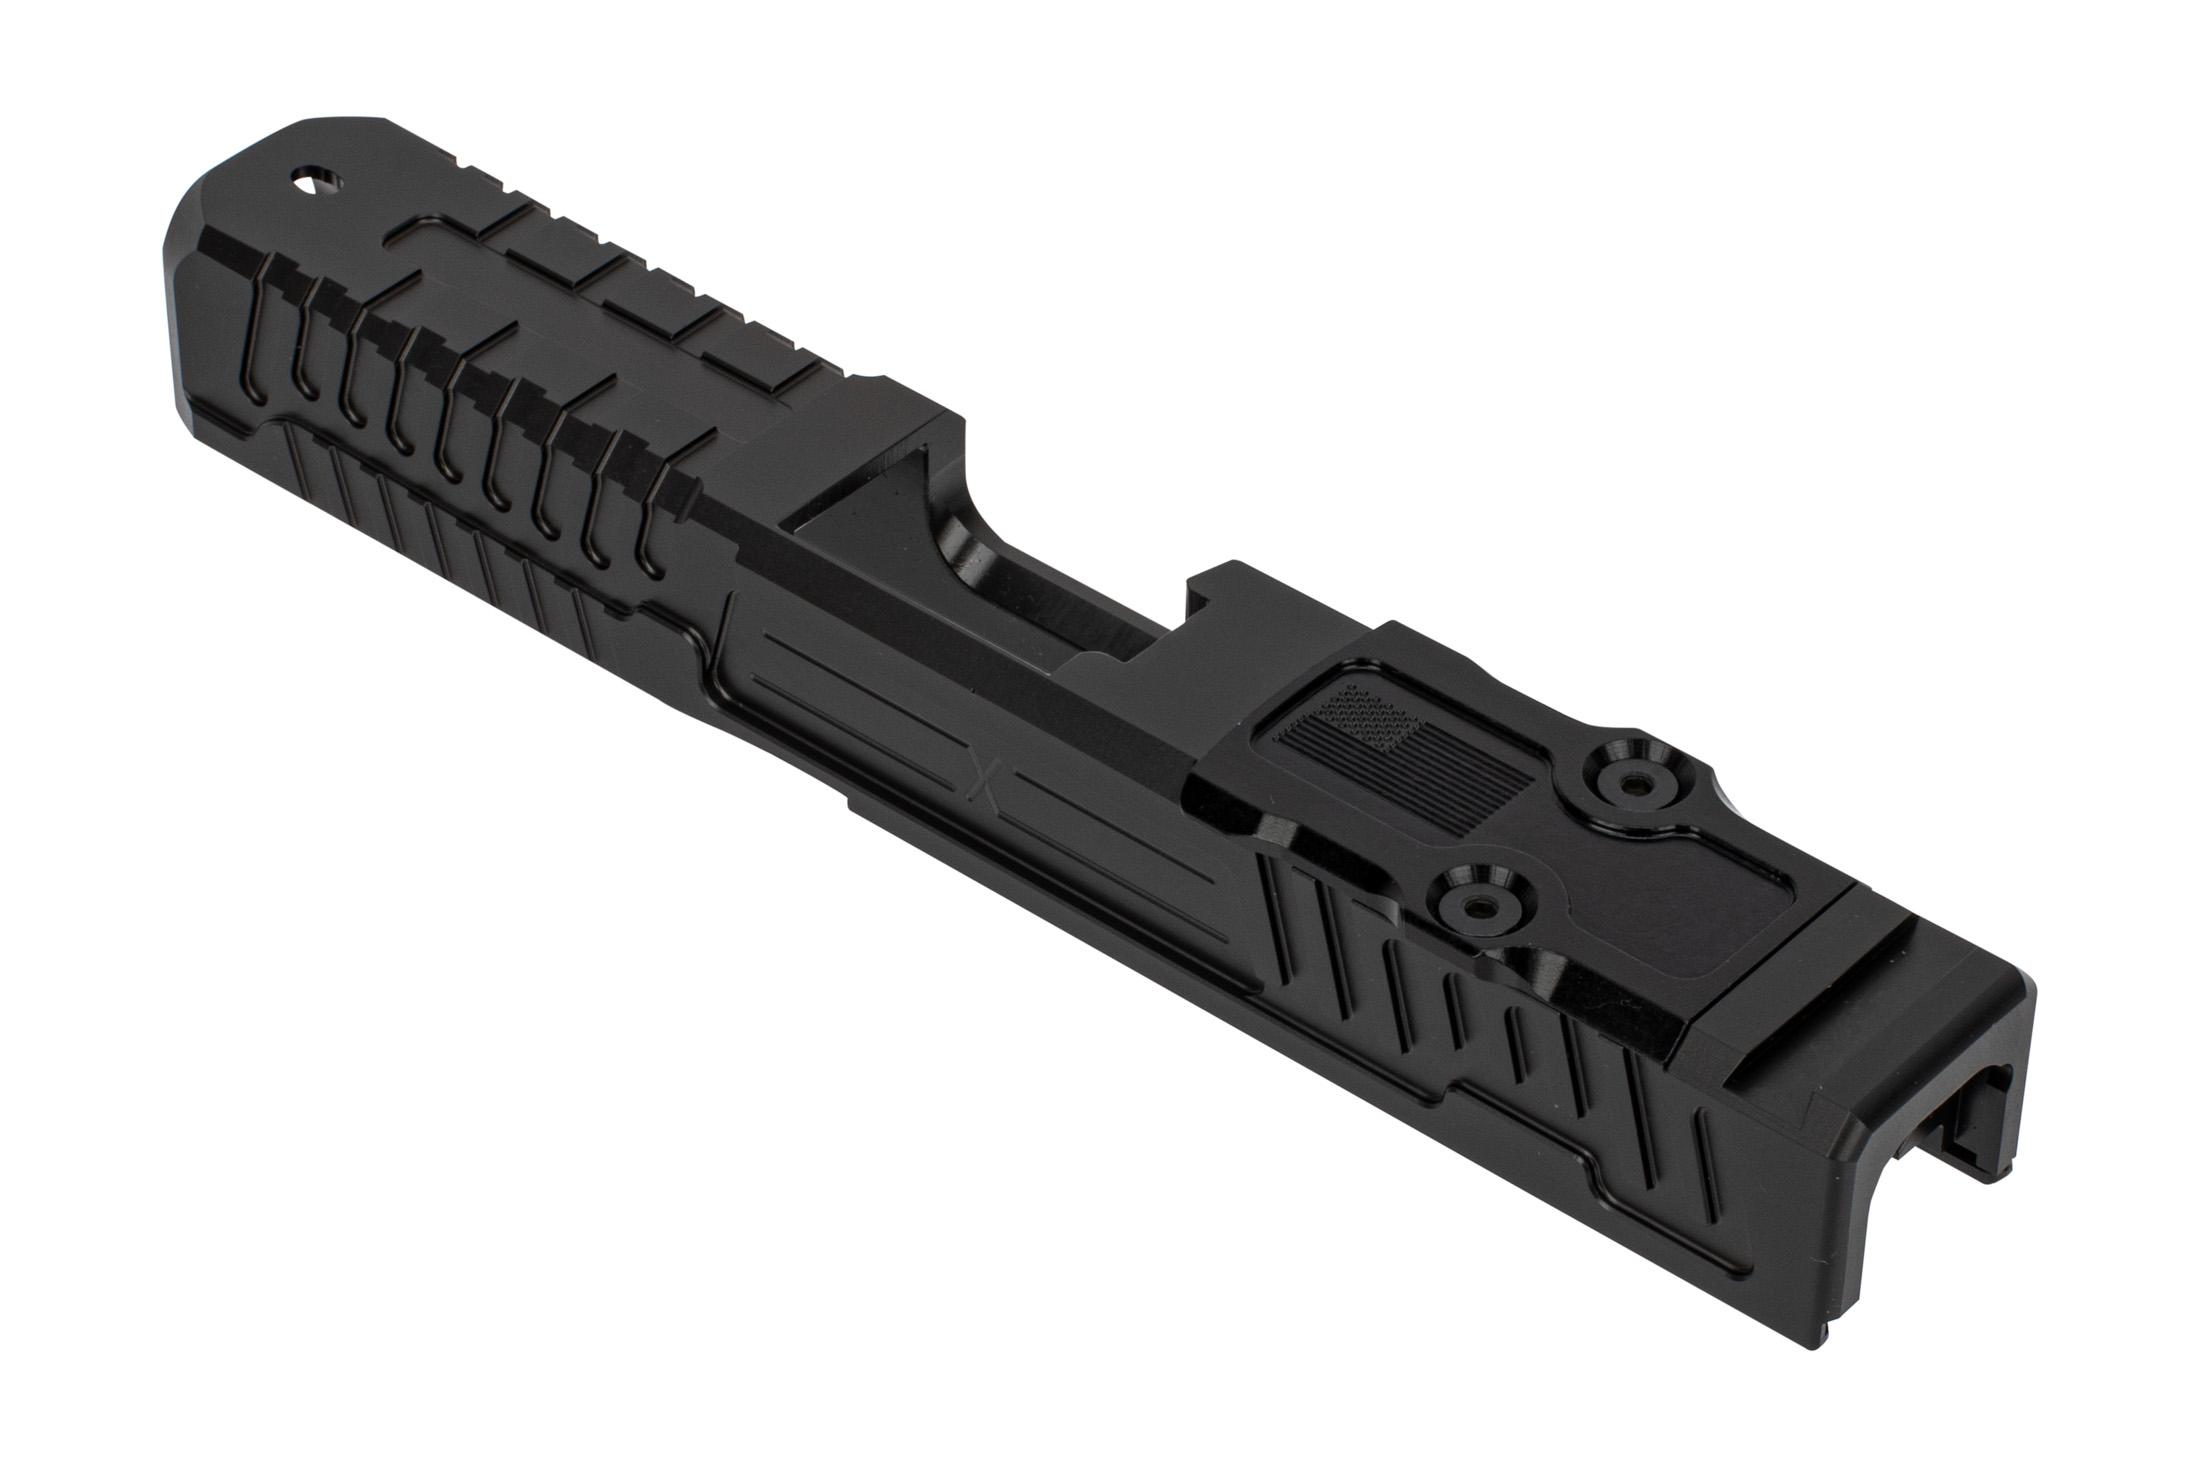 Faxon Firearms Patriot Glock 19 slide features a heavy duty black DLC finish